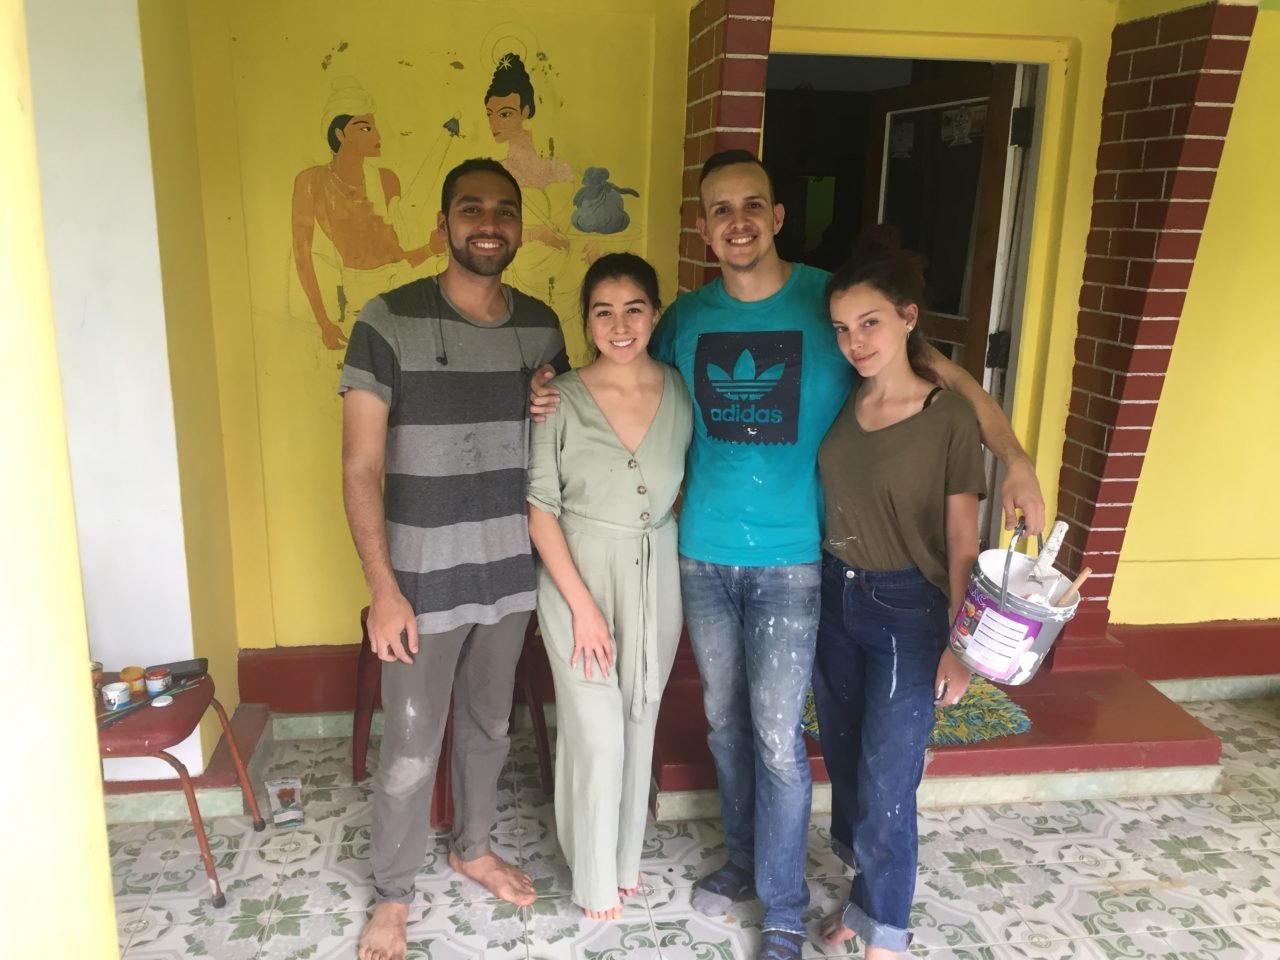 Andrés from Colombia helping paint in Sri Lanka